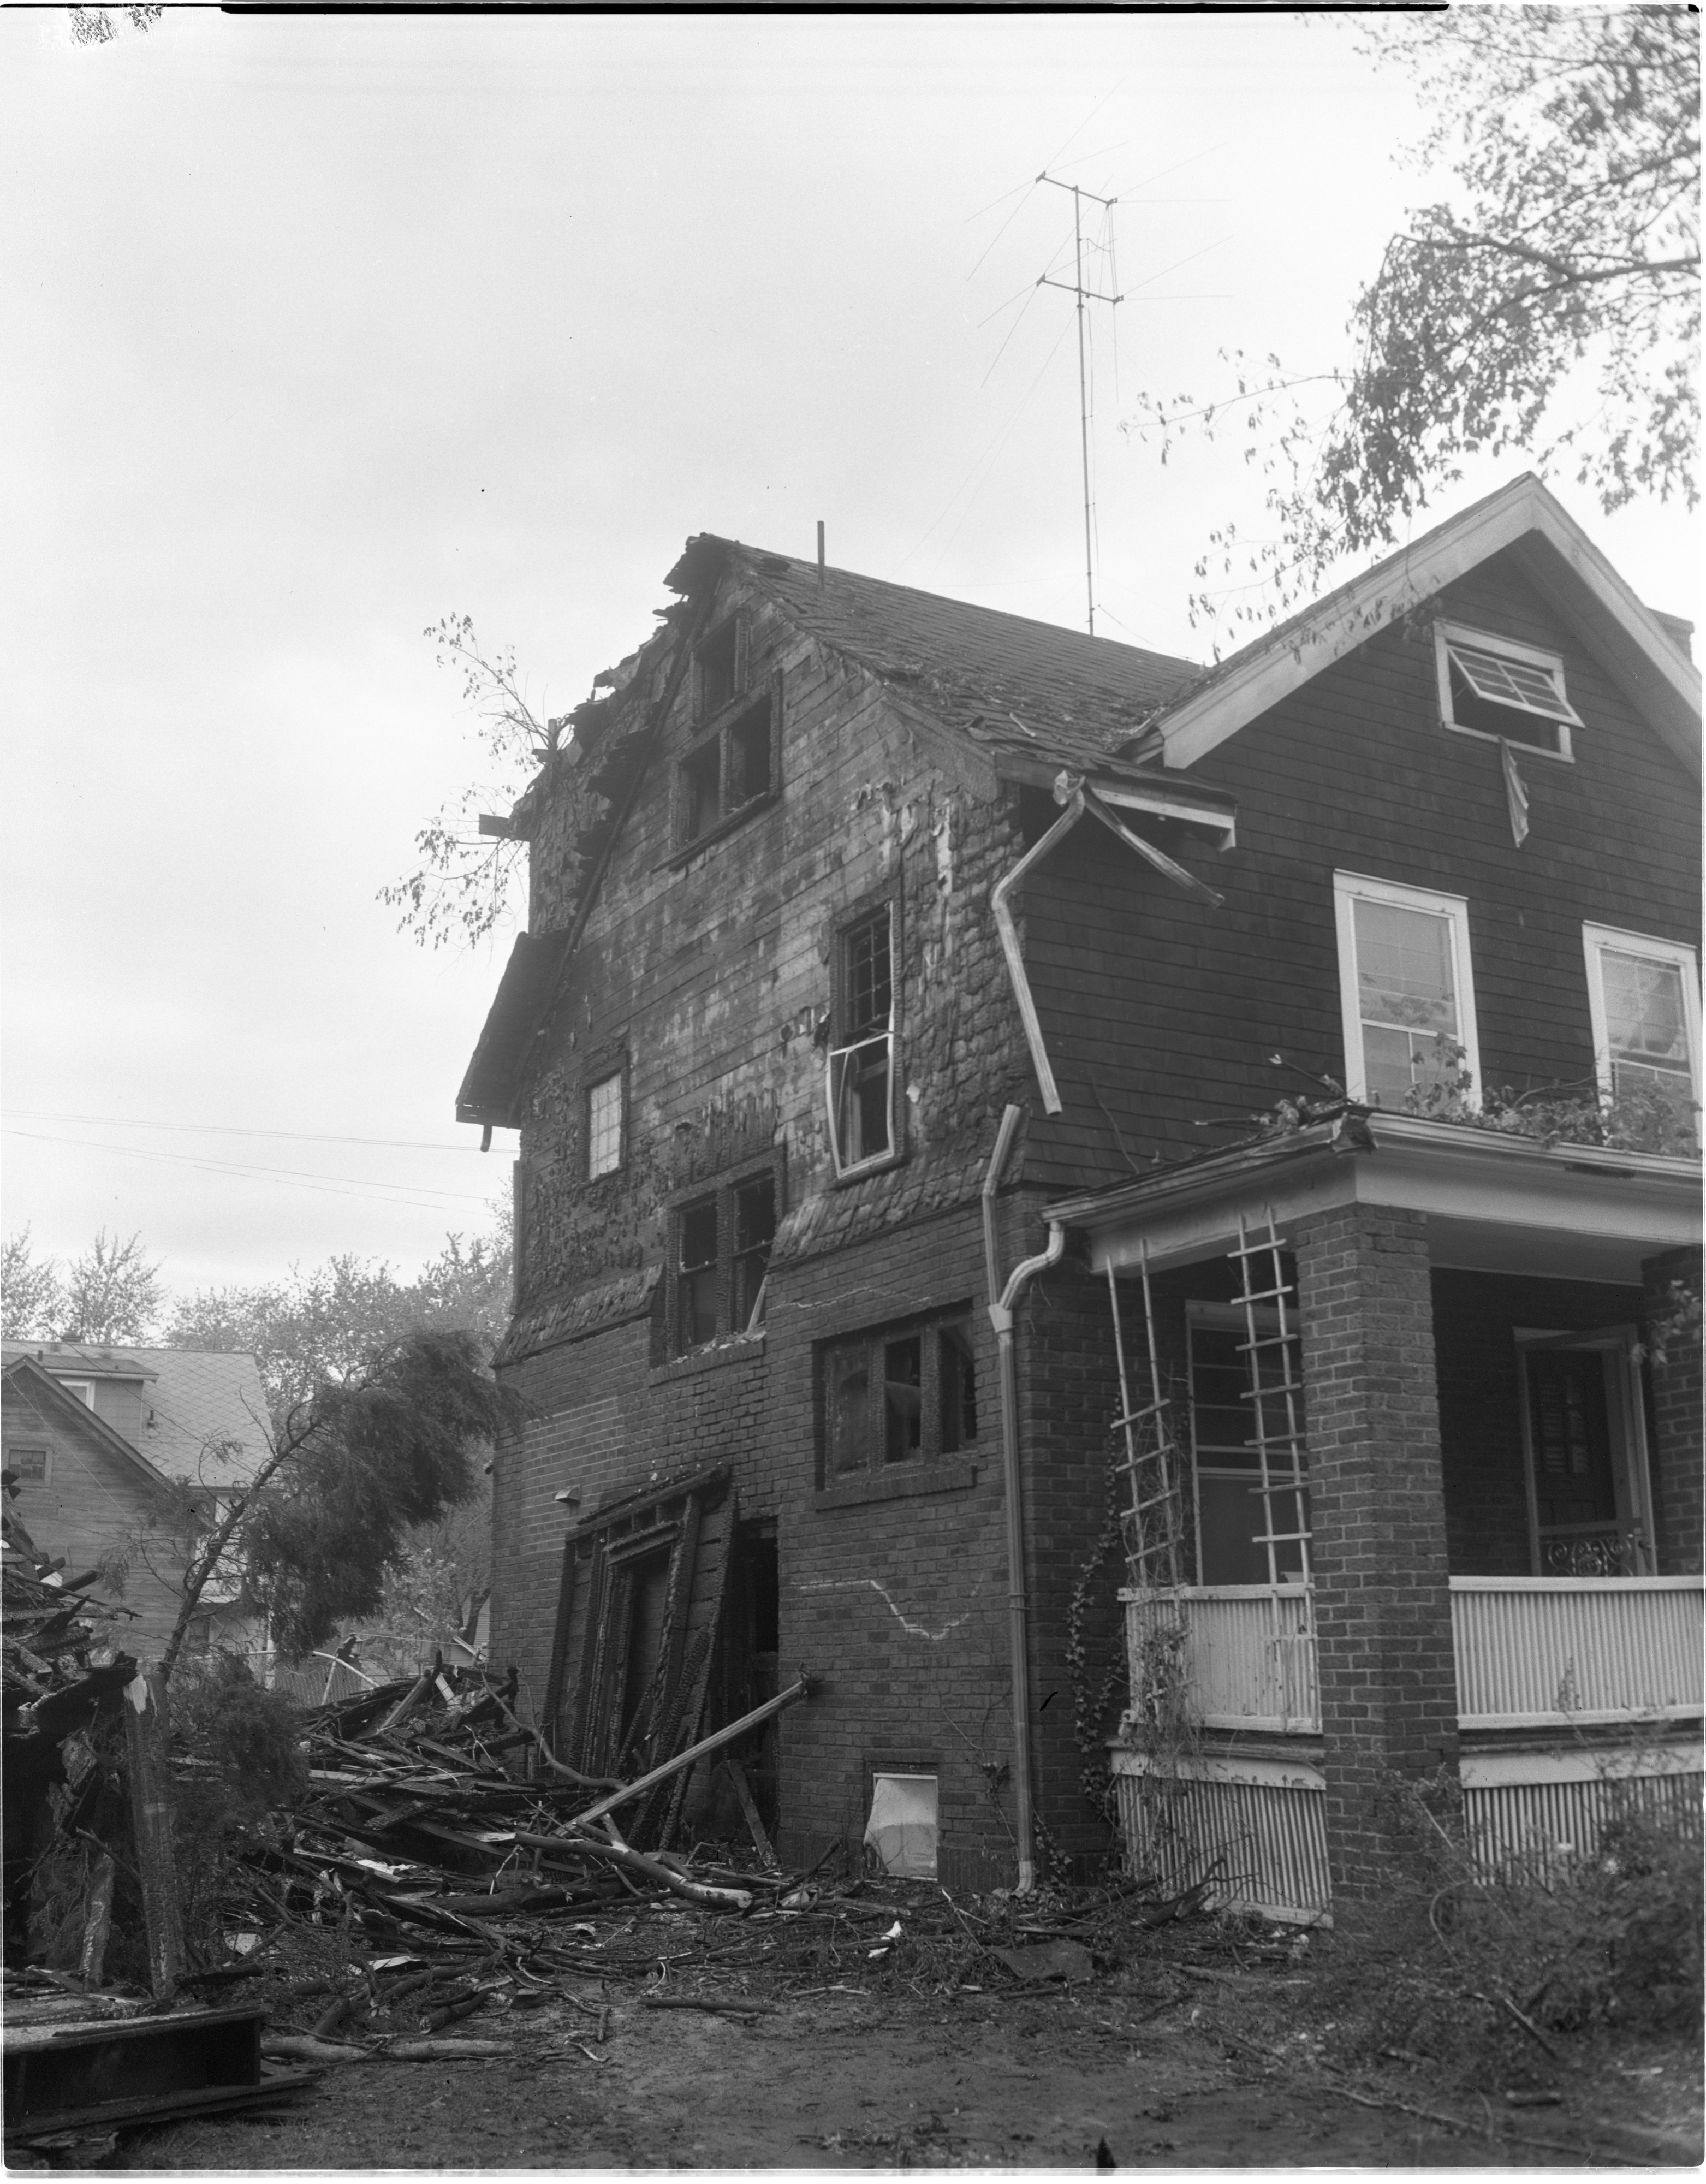 849 Brookwood Place Damaged By Fire During The Windstorm, May 1959 image